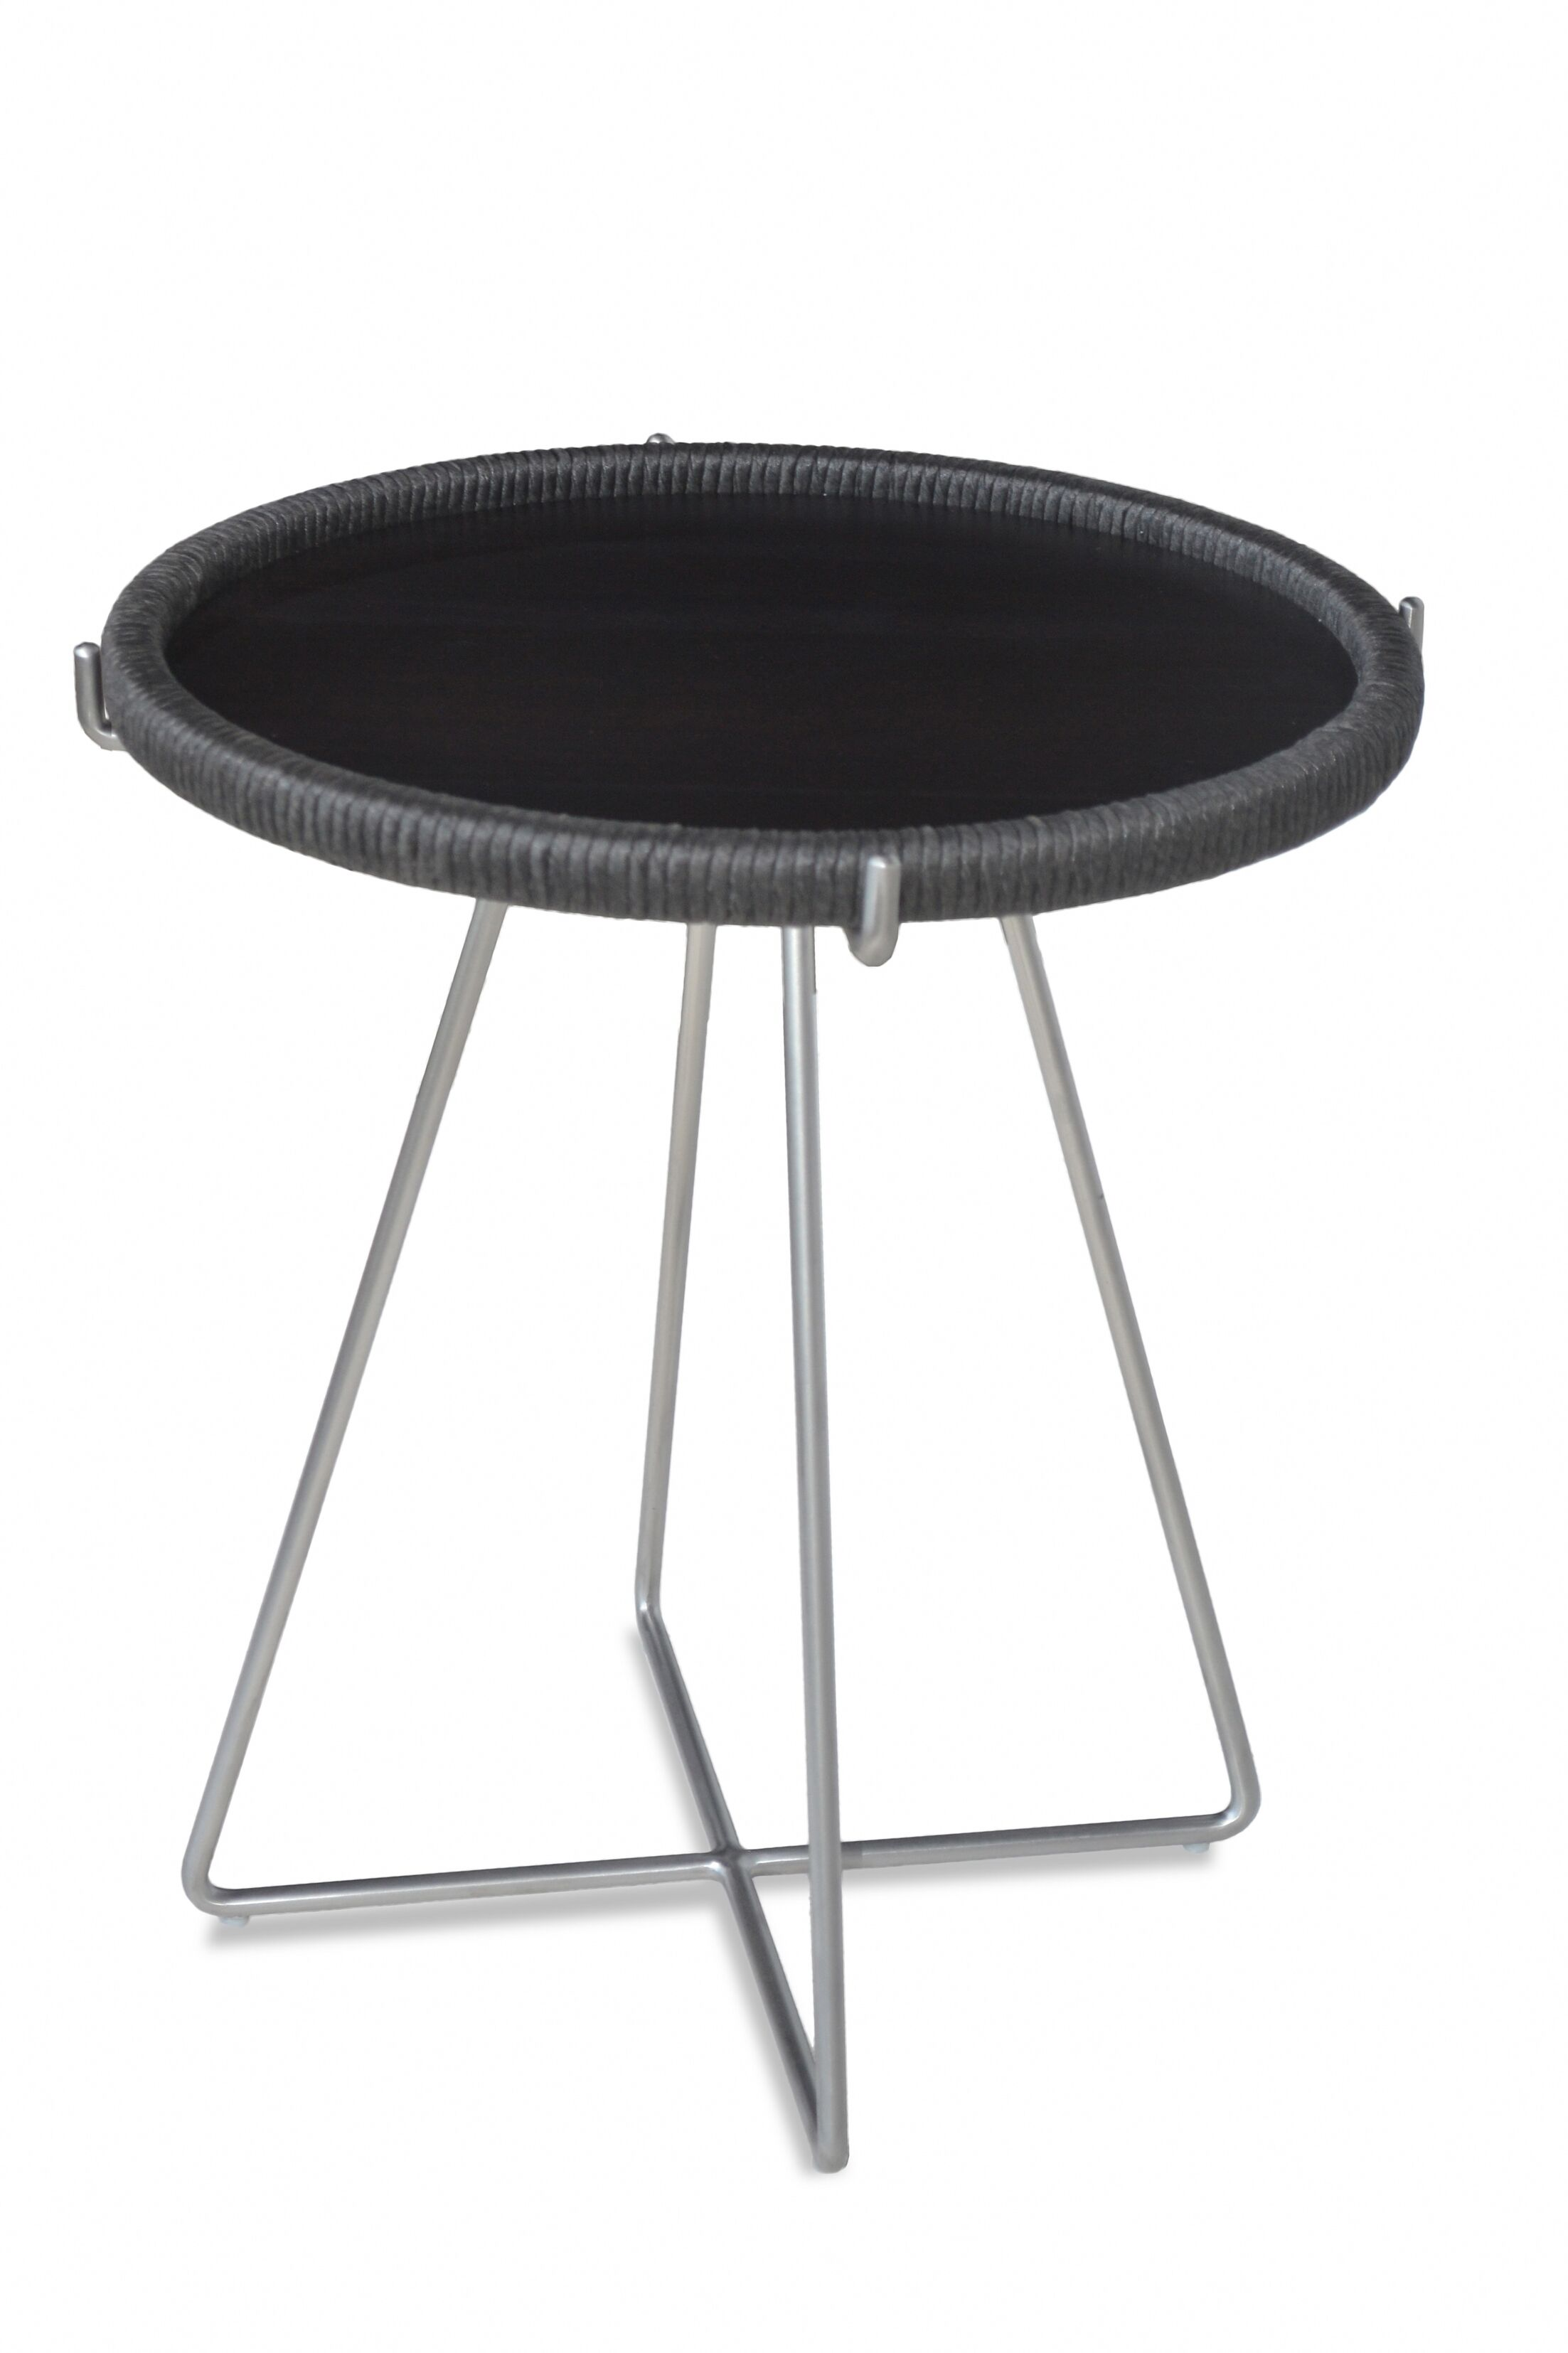 Tampah End Table